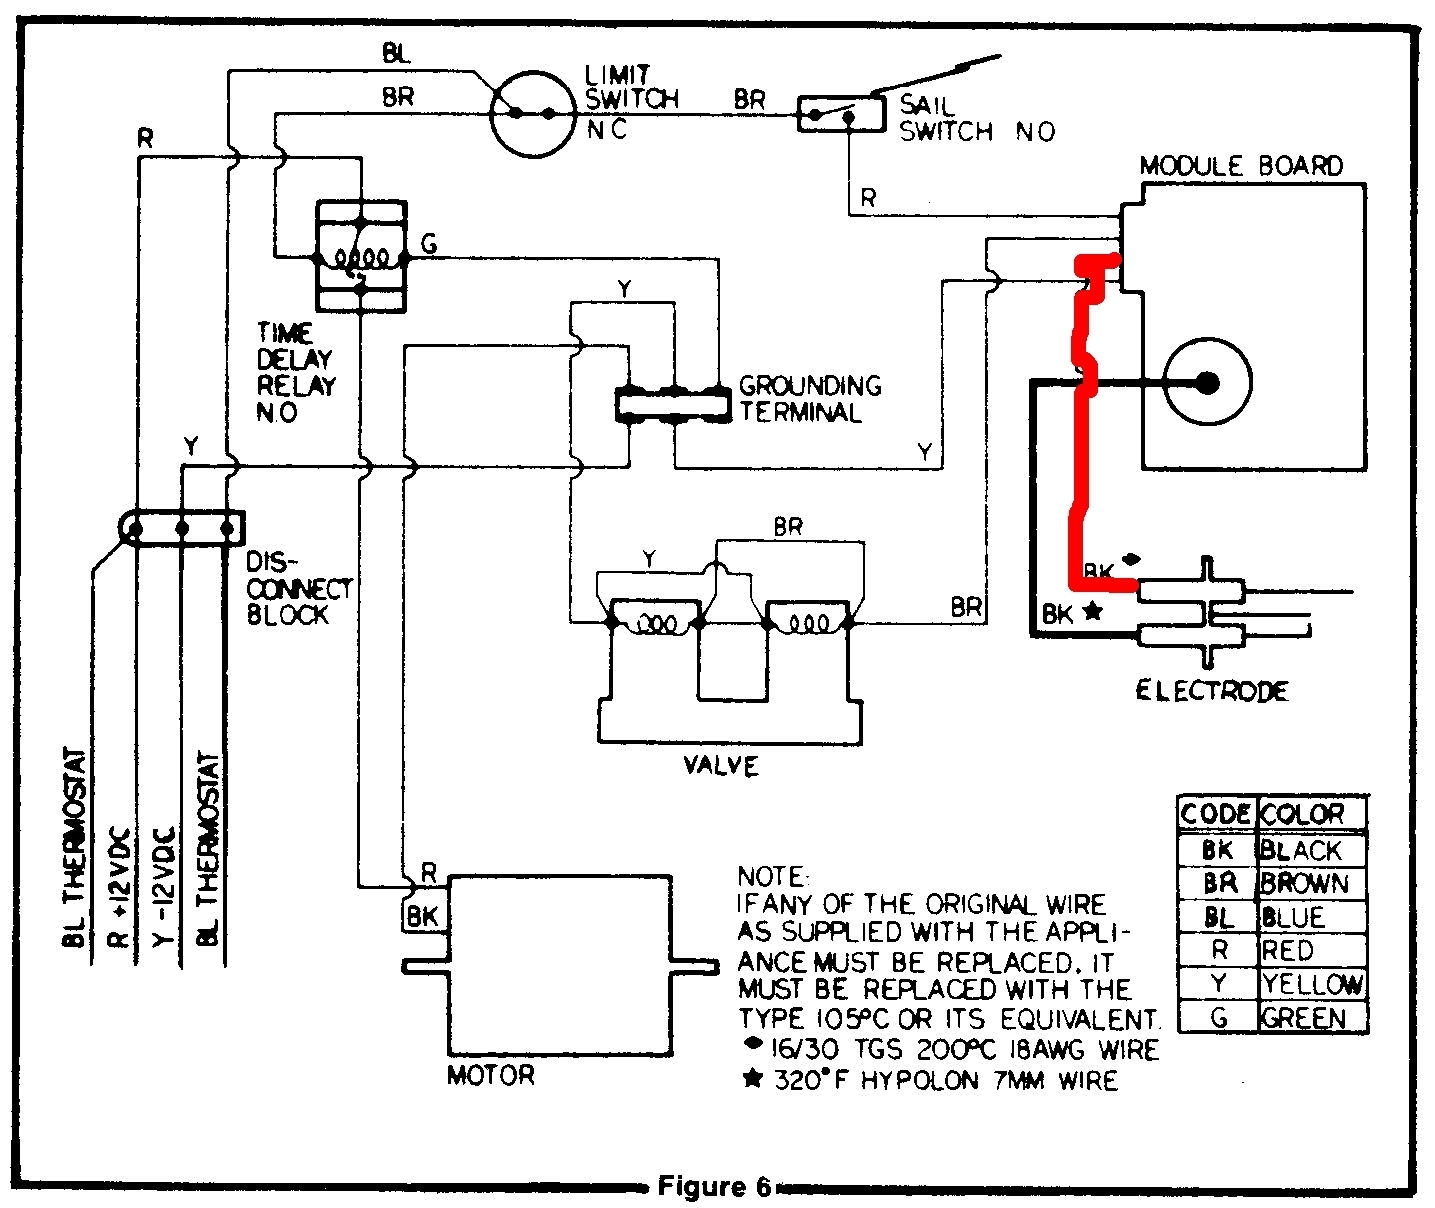 webasto heater wiring diagram rv furnace wiring diagram pro wiring diagram  rv furnace wiring diagram pro wiring